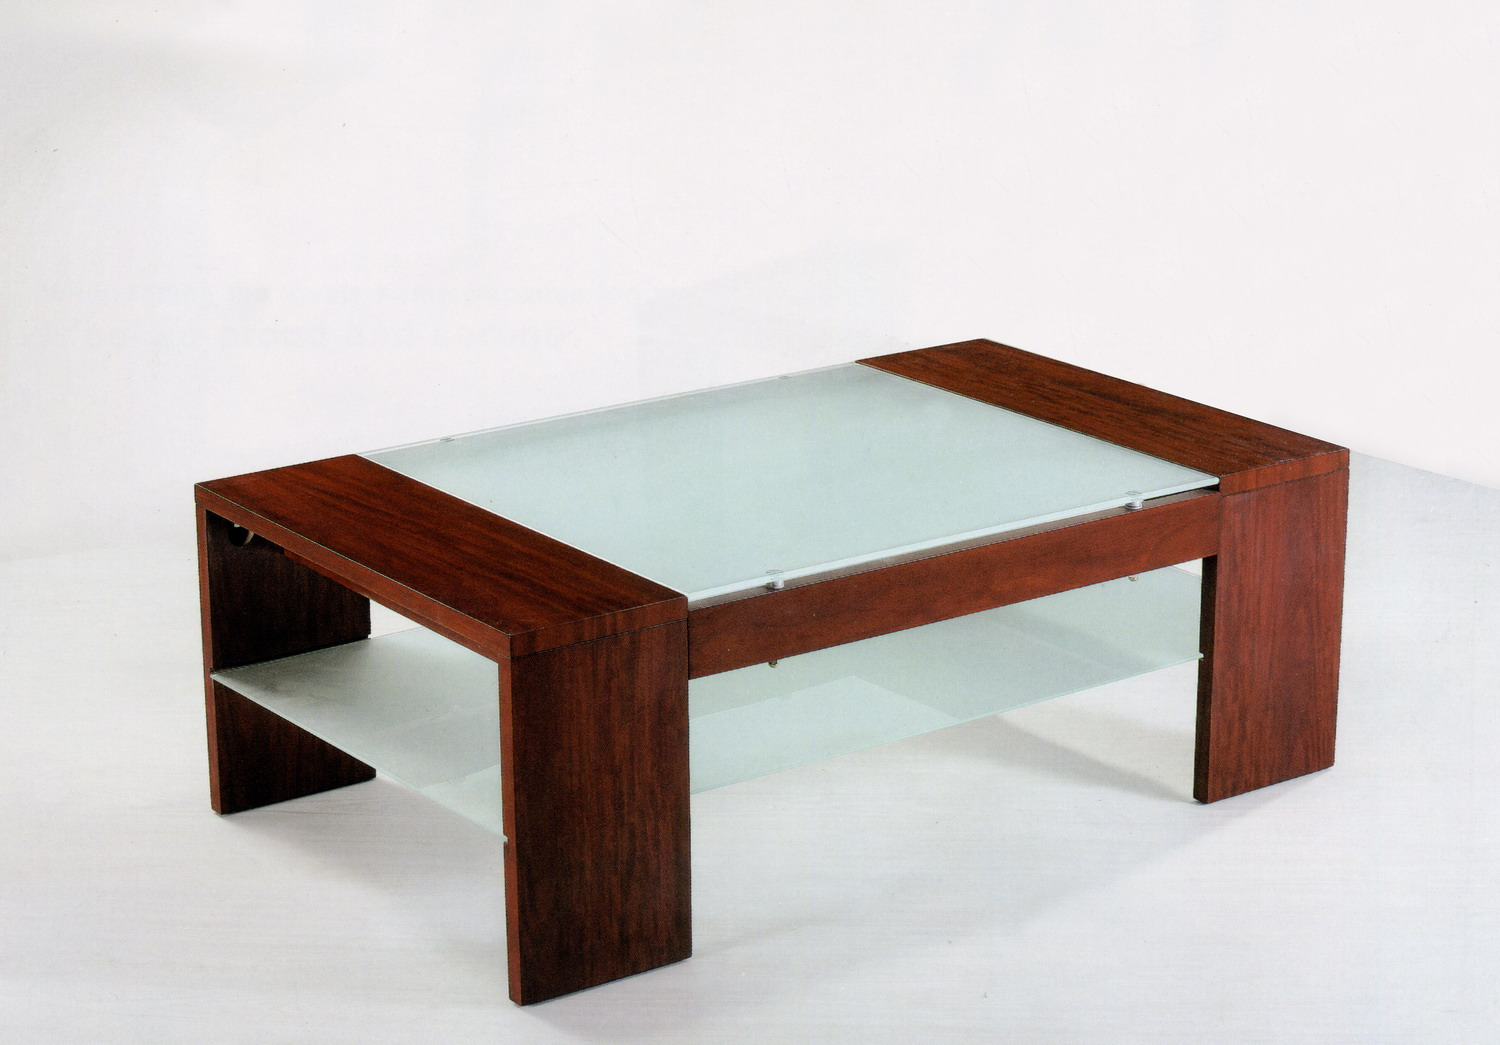 Glass And Wood Coffee Table Coffee Table Glass And Wood Will Bring You An Atmosphere Of Calmness And Control (View 3 of 10)